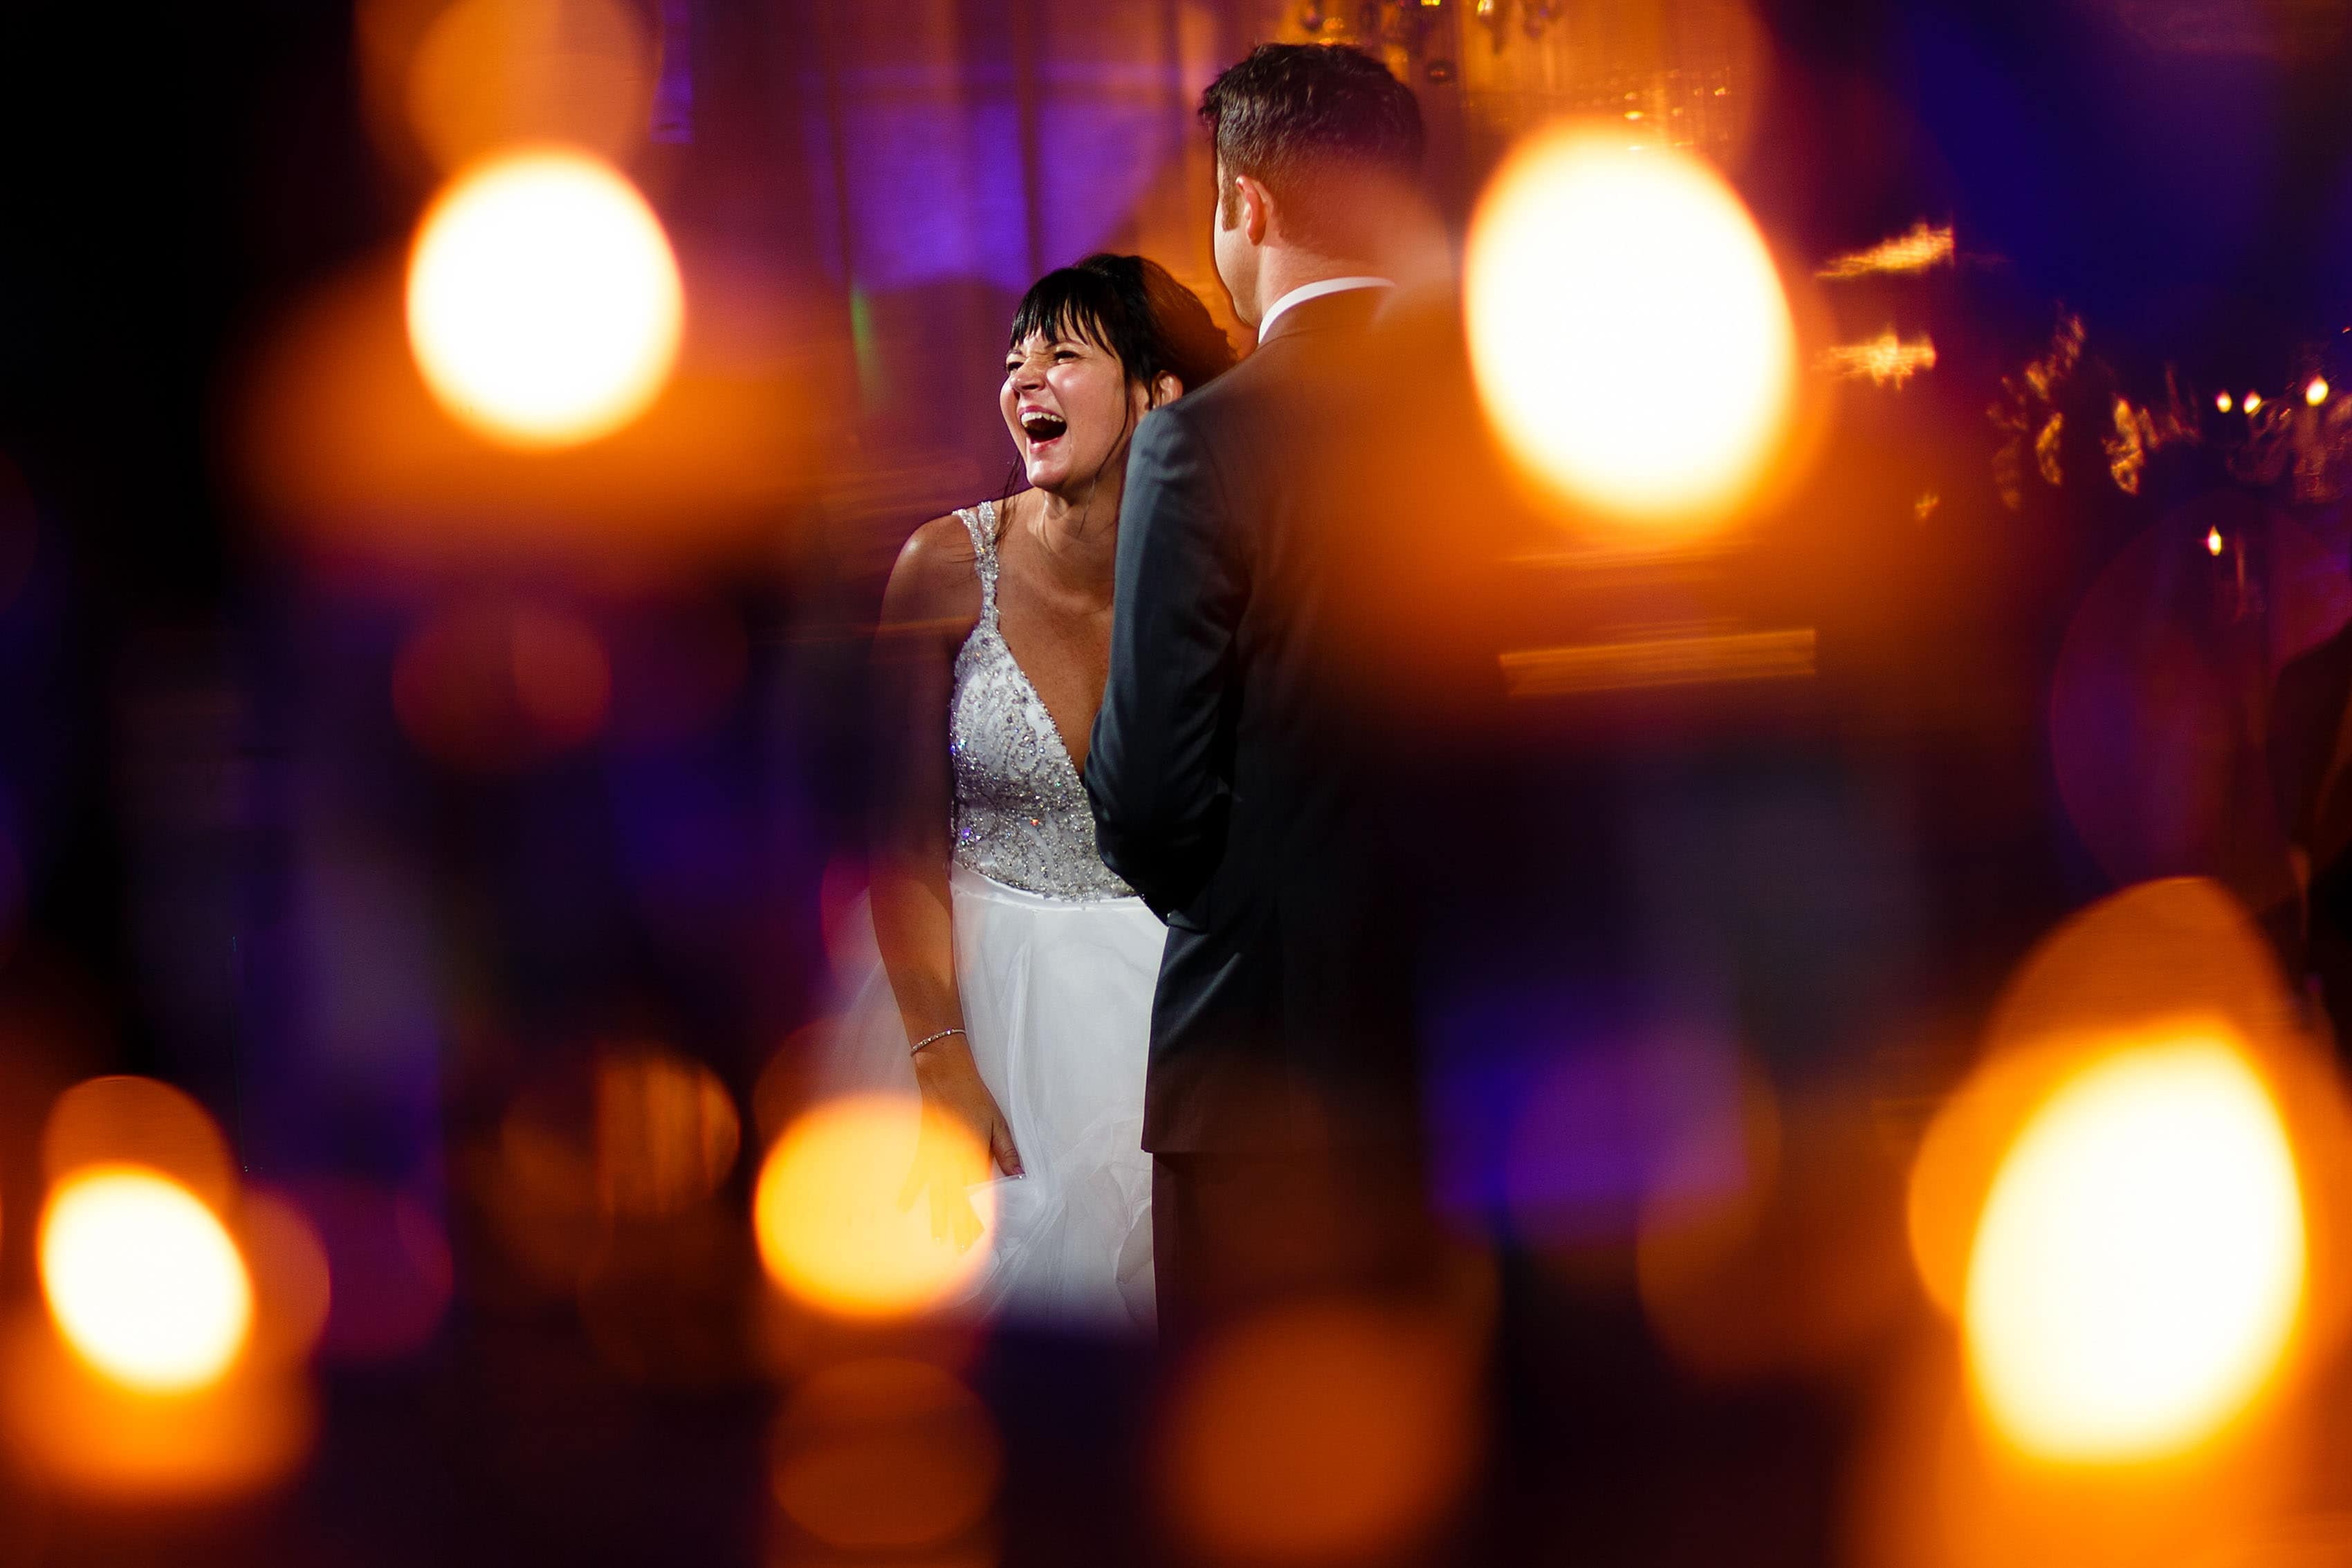 Chelsea and Ori share a first dance during their Room 1520 wedding in Chicago